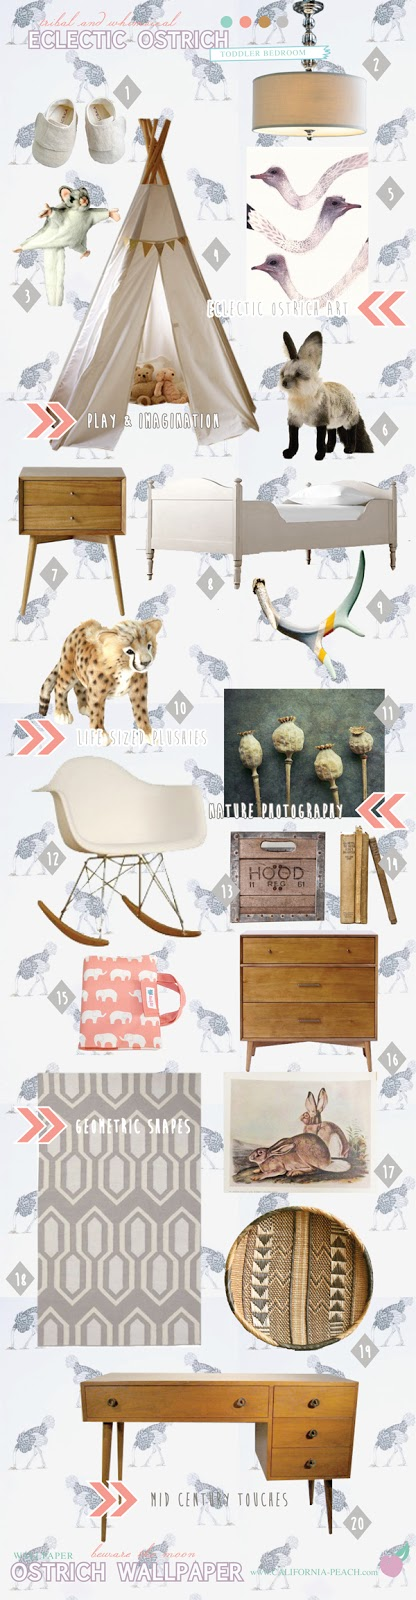 Ecclectic Ostrich || on California Peach || Toddler Room Style Interior Design Board